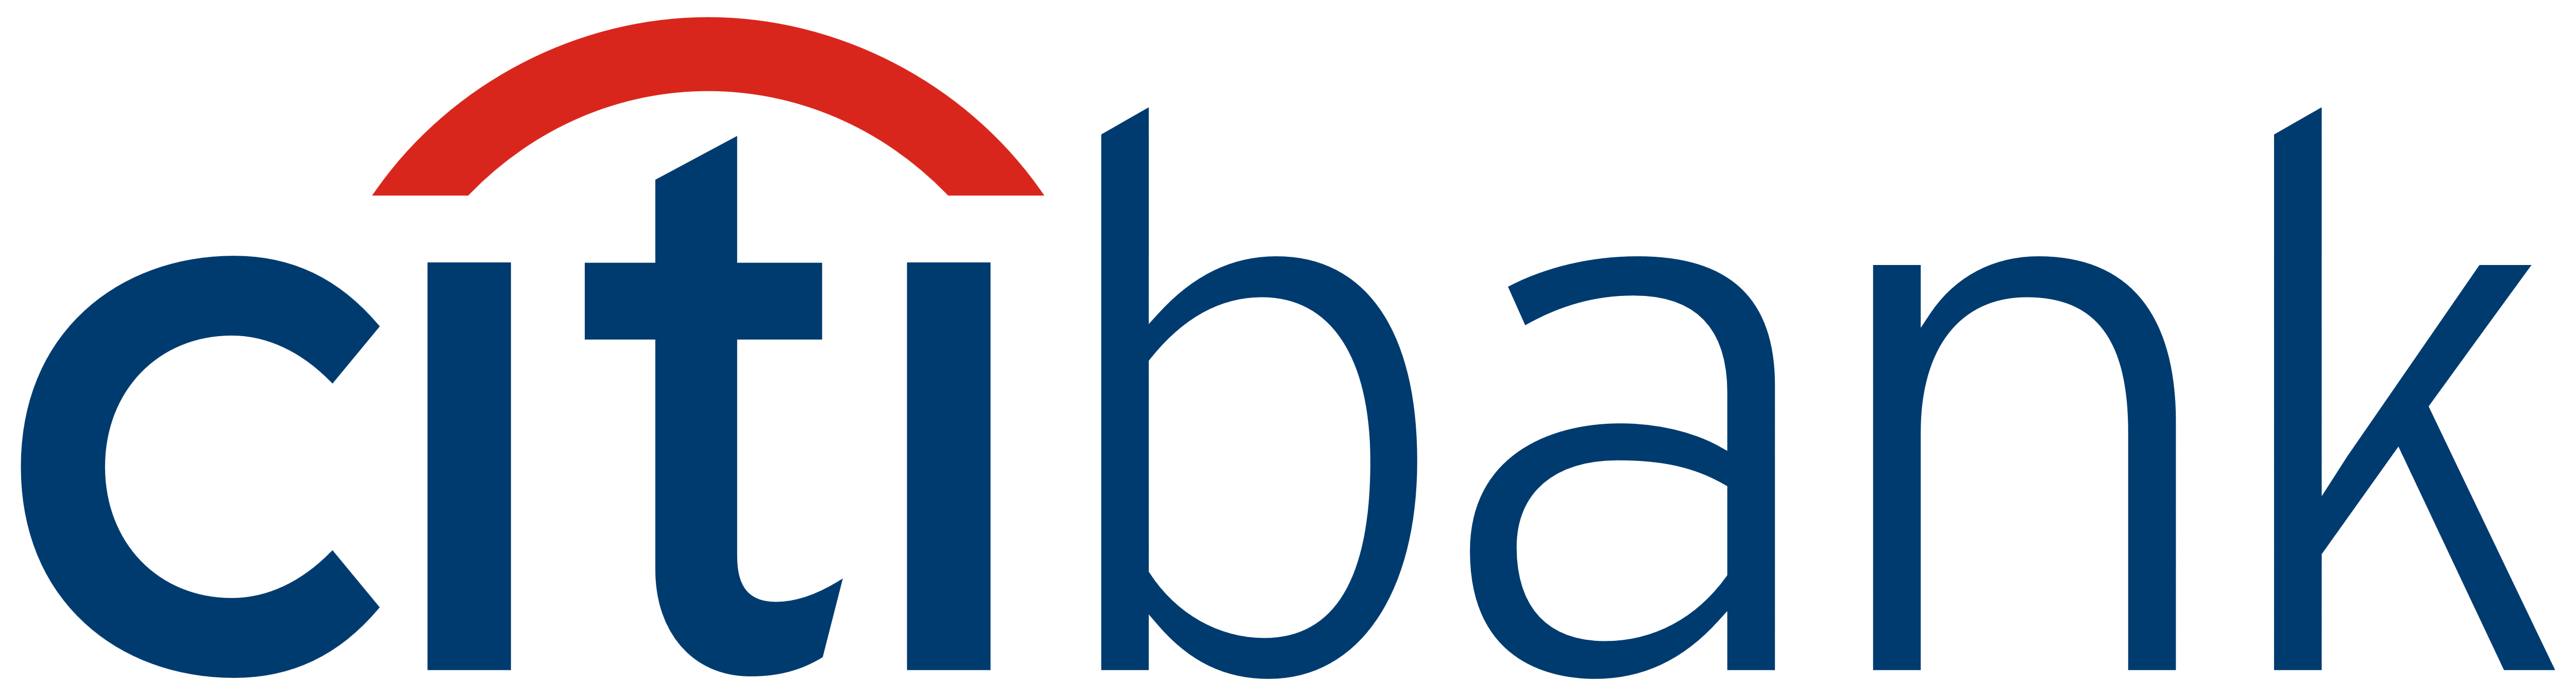 Citibank Citi Logos Download